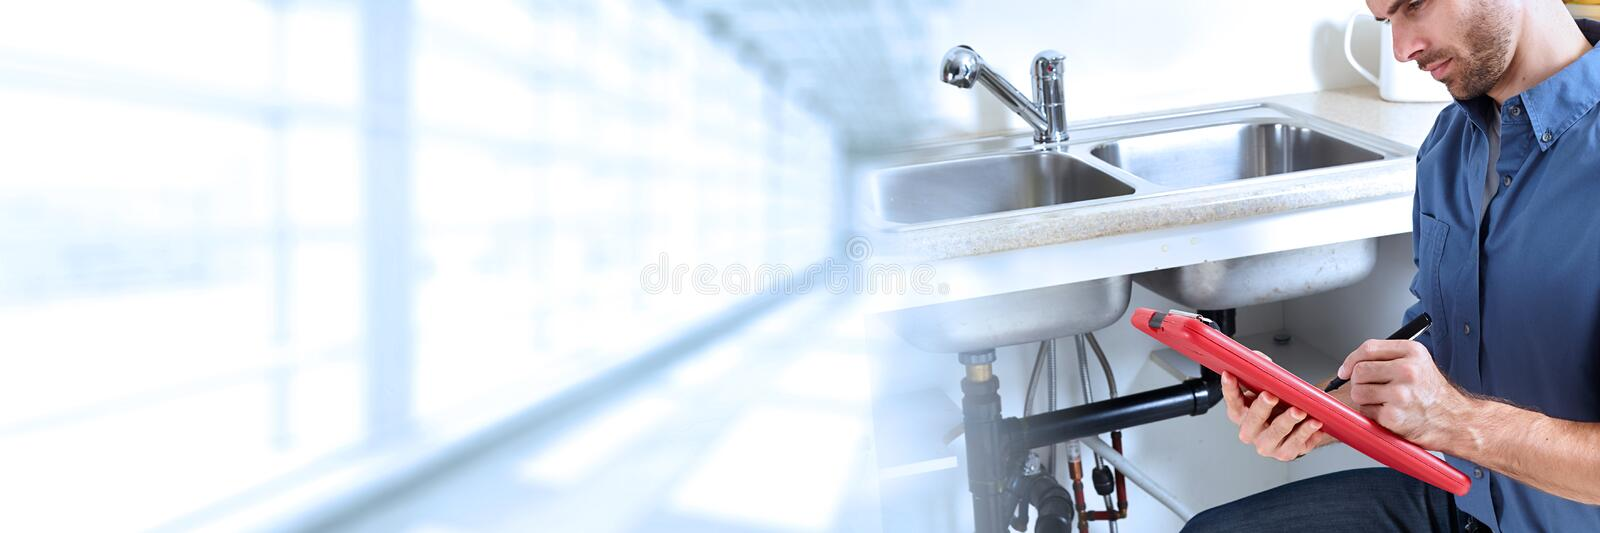 Plumber. Professional plumber working renovation in kitchen home stock images